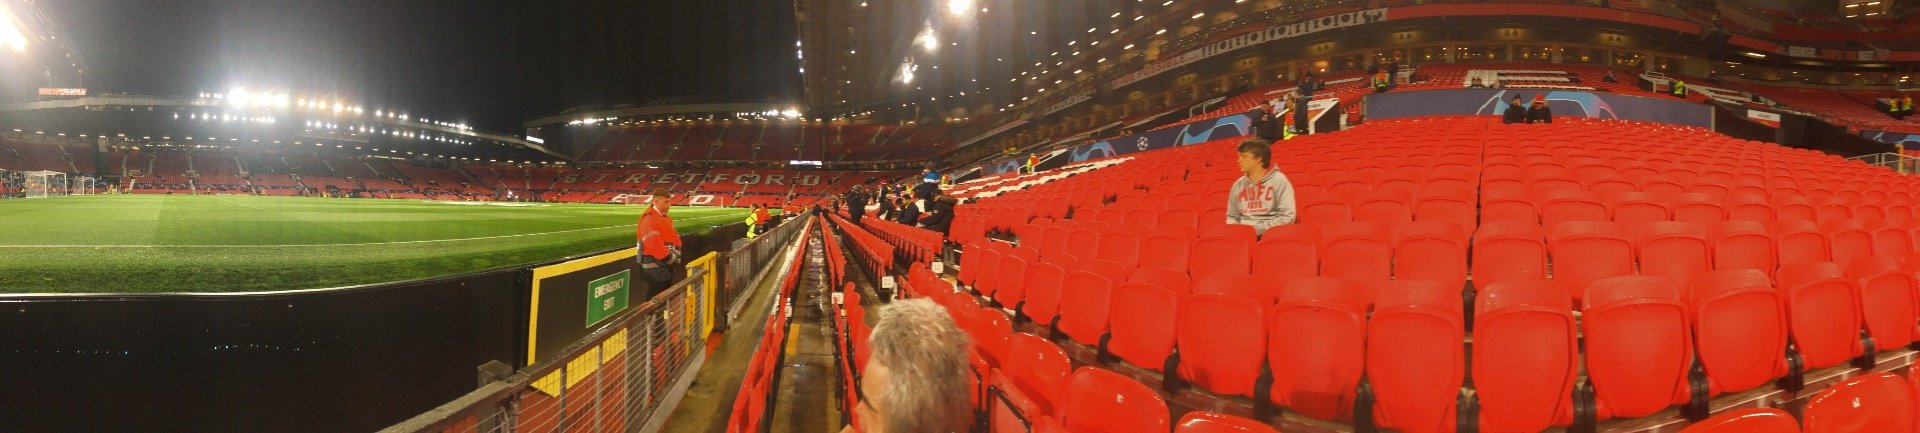 Old Trafford Section N1404 Row BB Seat 240